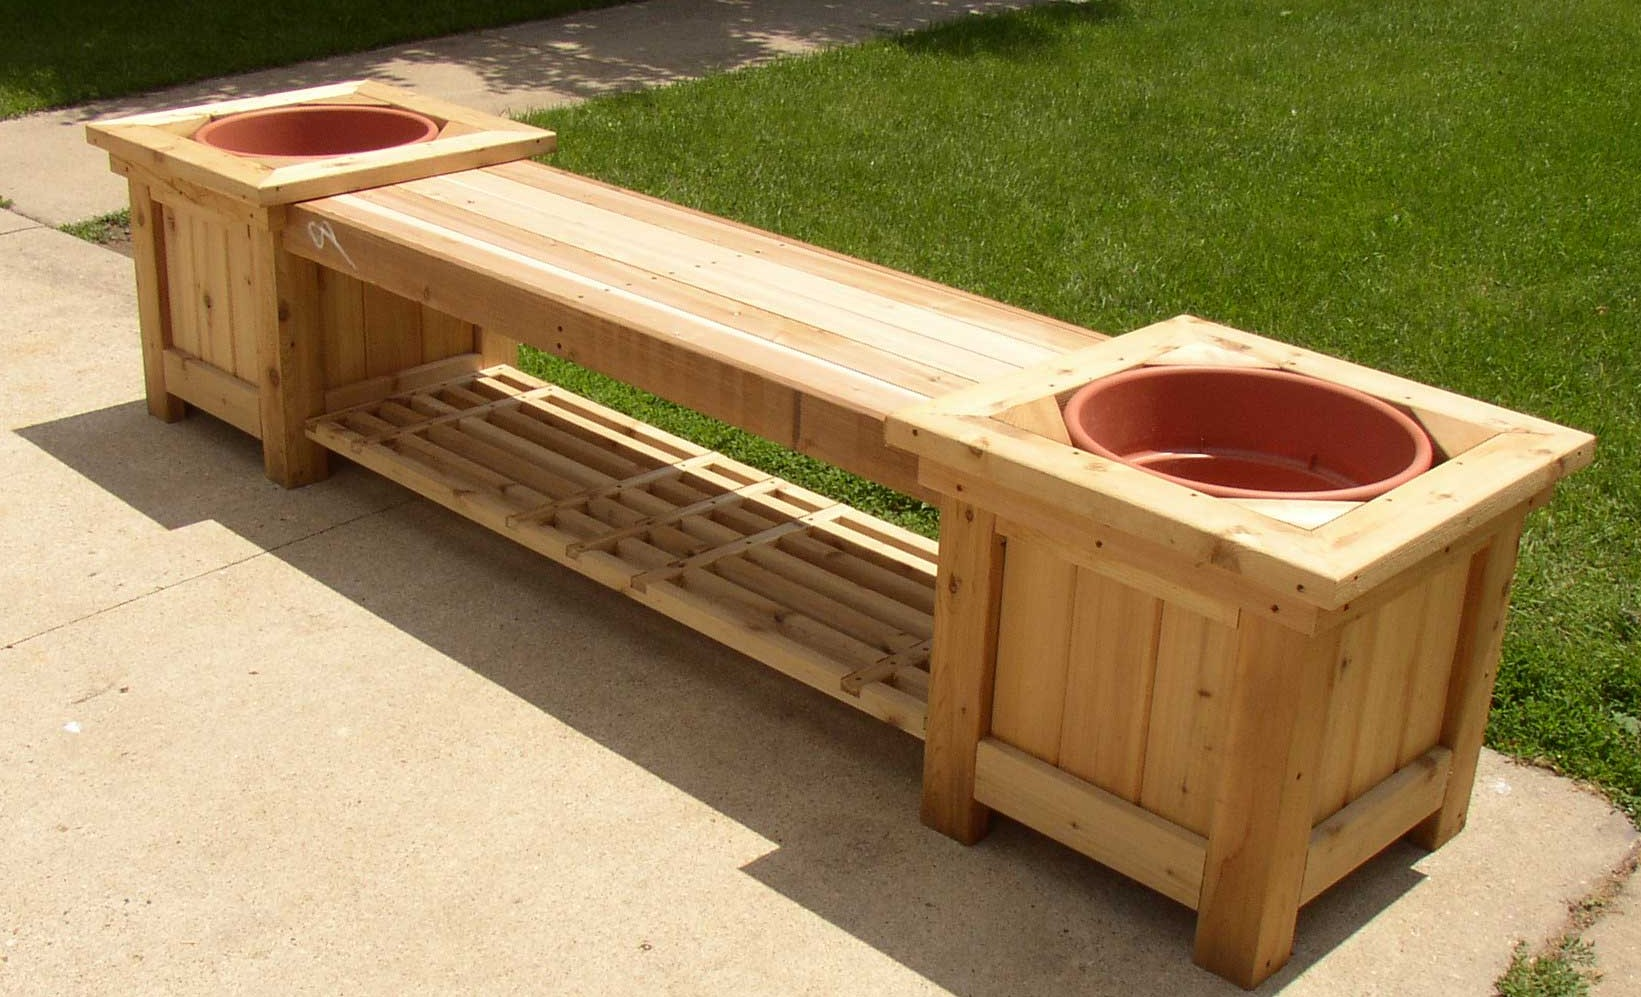 Diy wood planter bench projects, Garden Windmill Building ...